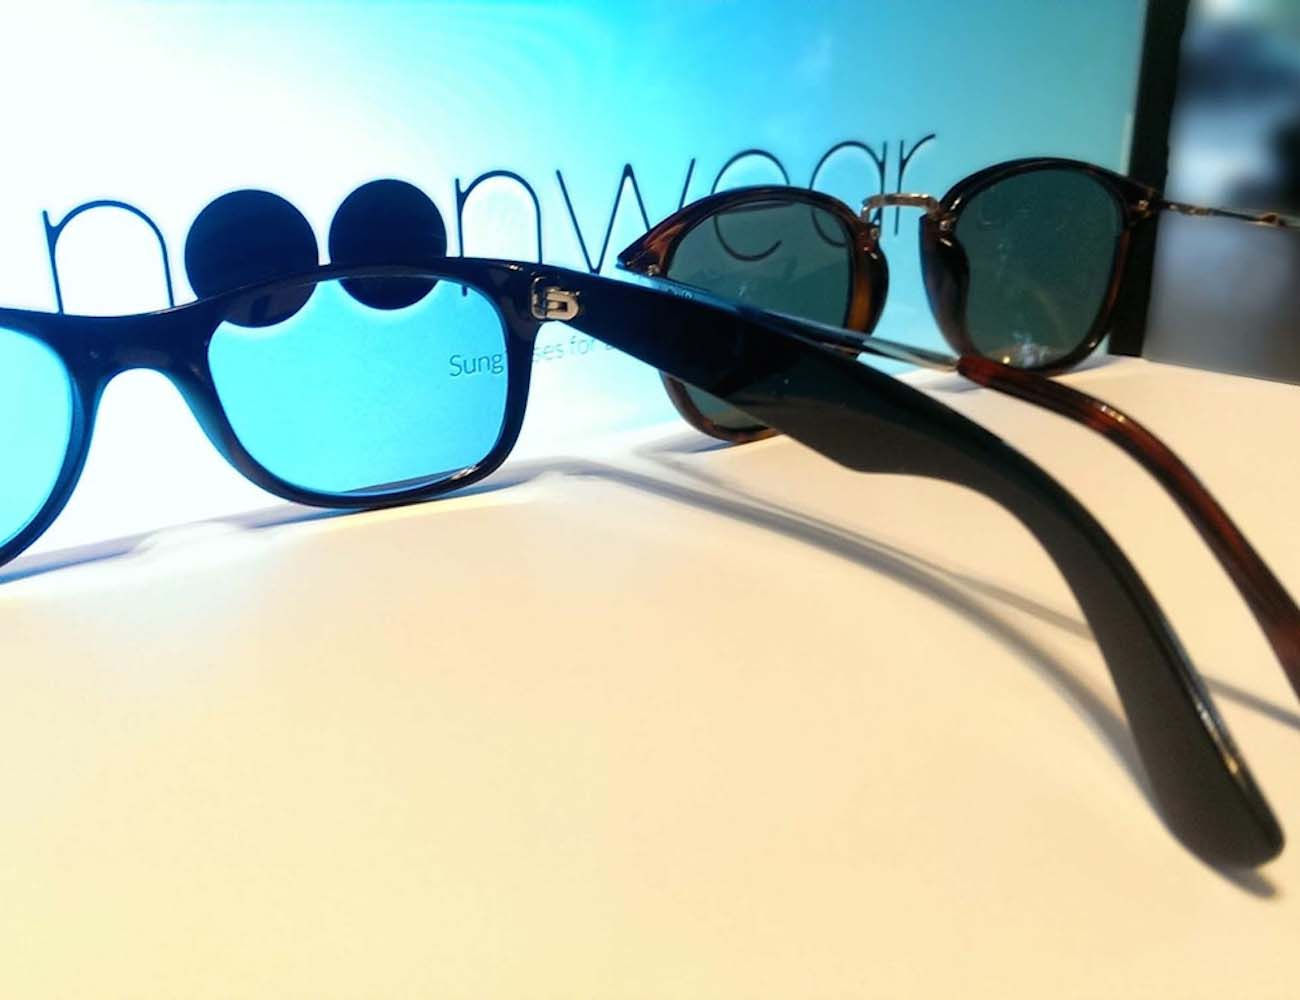 NoonWear Sunglasses for Electronics